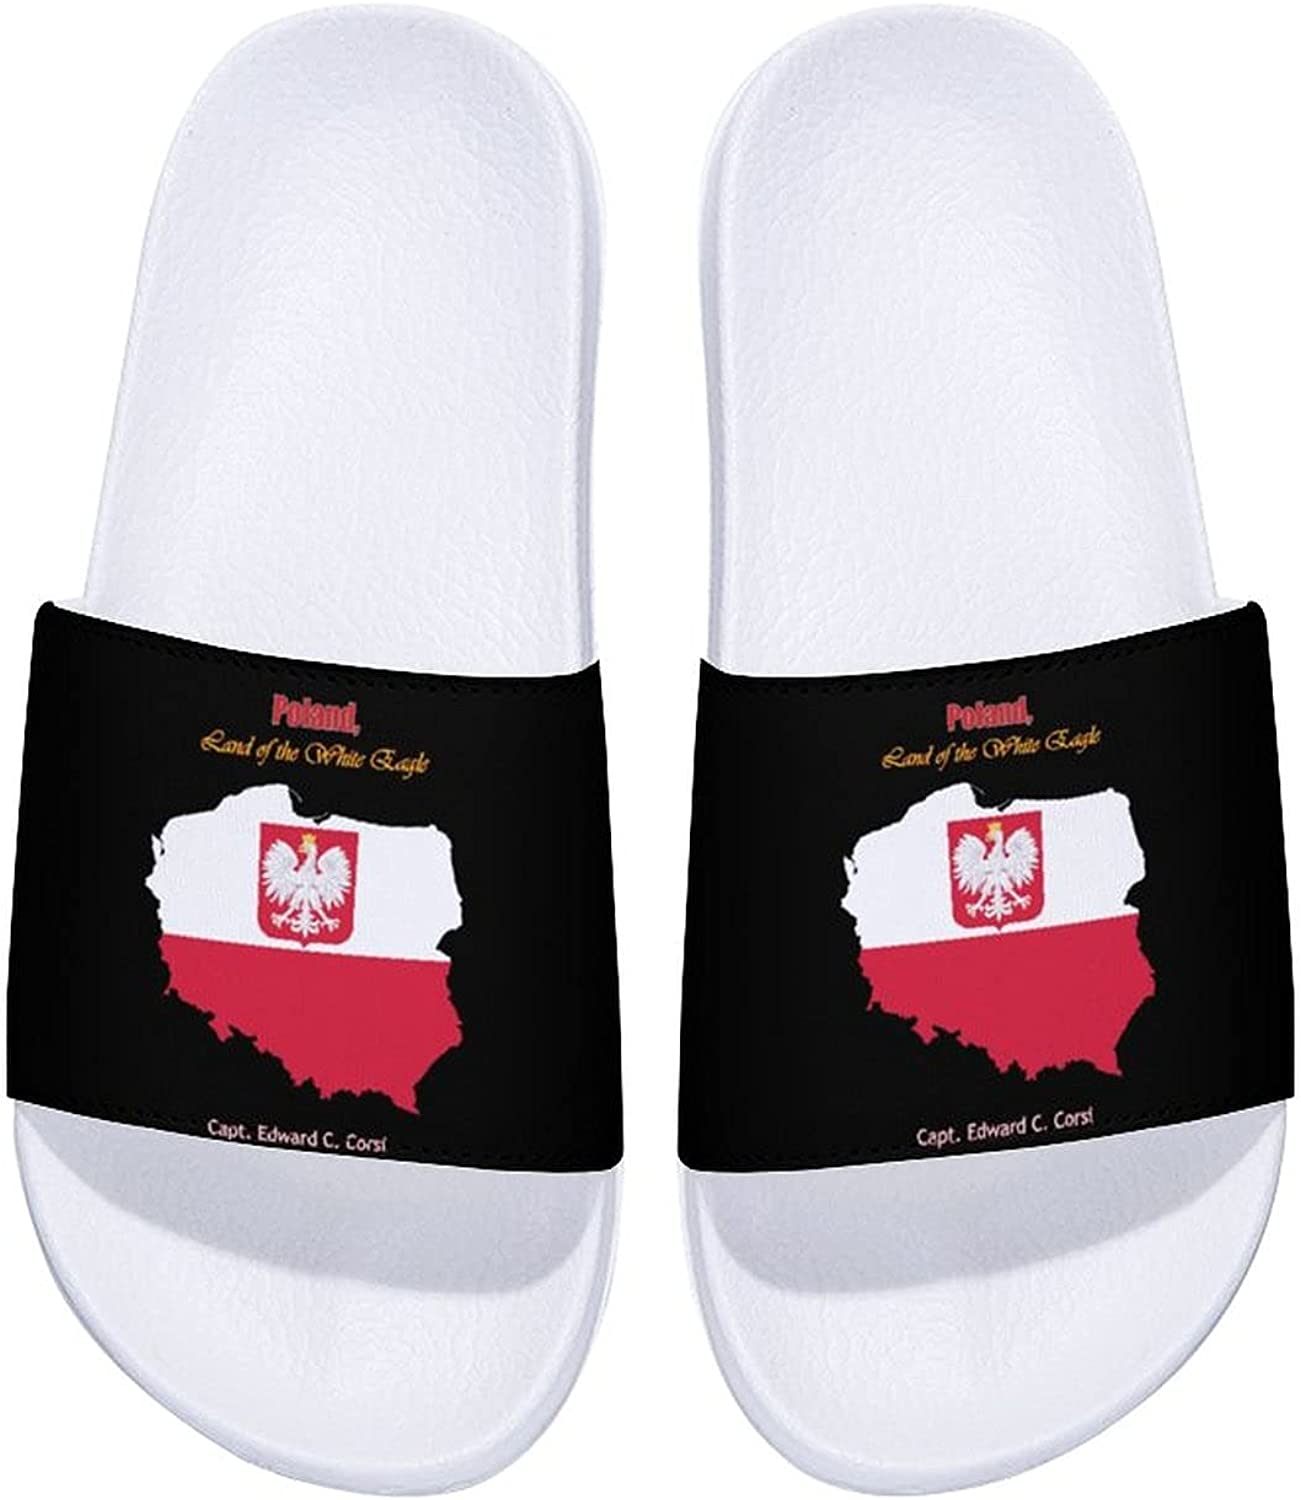 Poland-land-of-the-white-eagle Men's and Women's Comfort Slide Sandals Indoor Outdoor